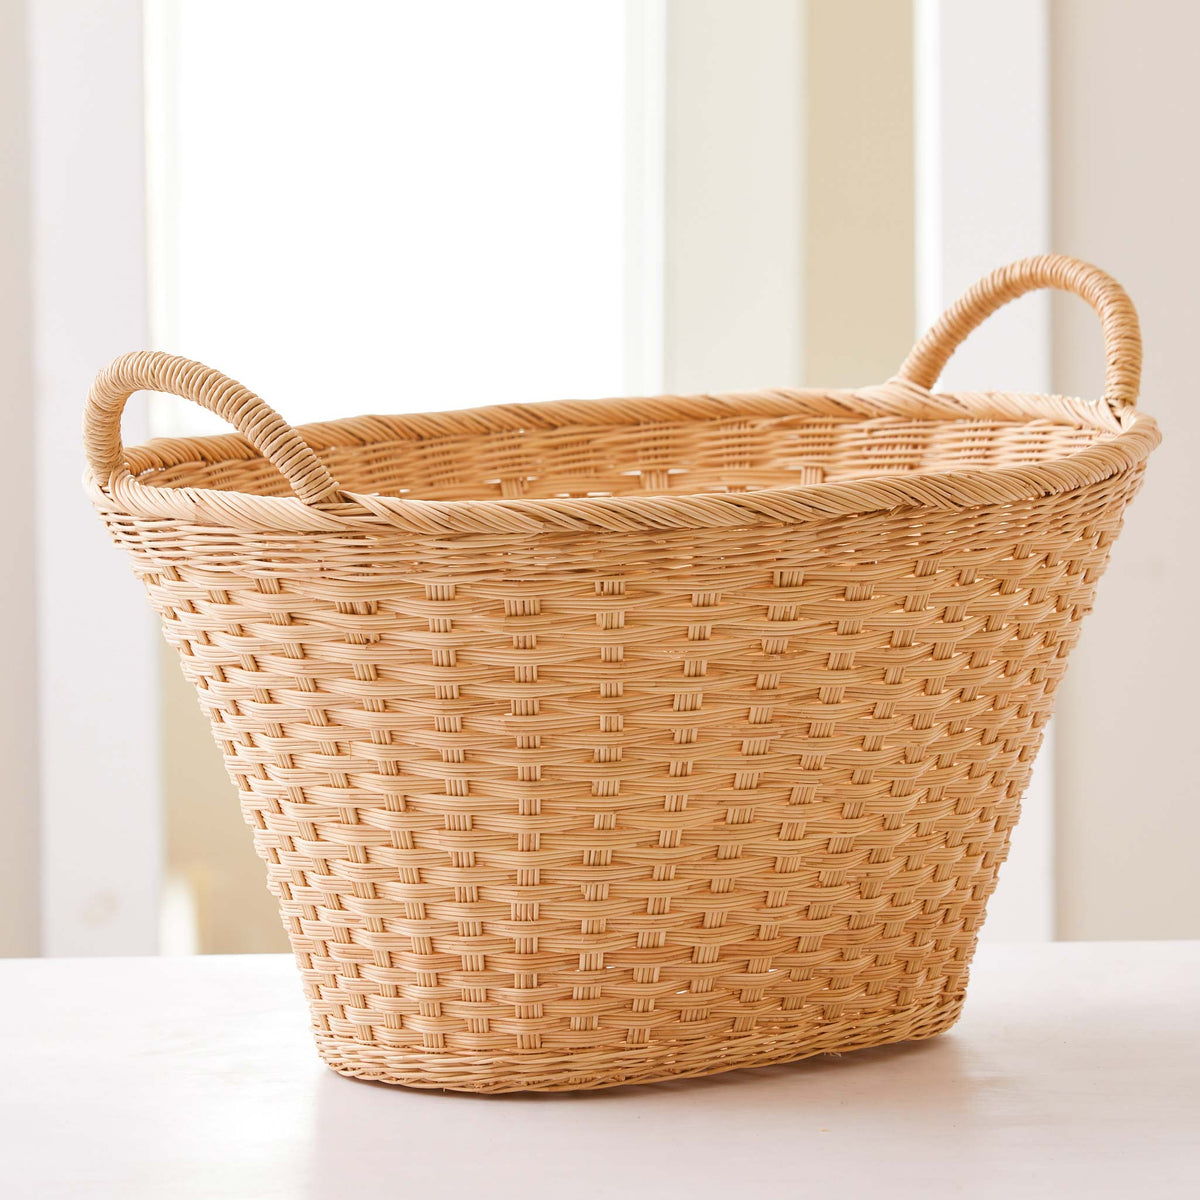 Beautiful Laundry basket. Traditional Laundry basket shape and handles. Tall, tough and durable laundry basket that is handmade and natural.